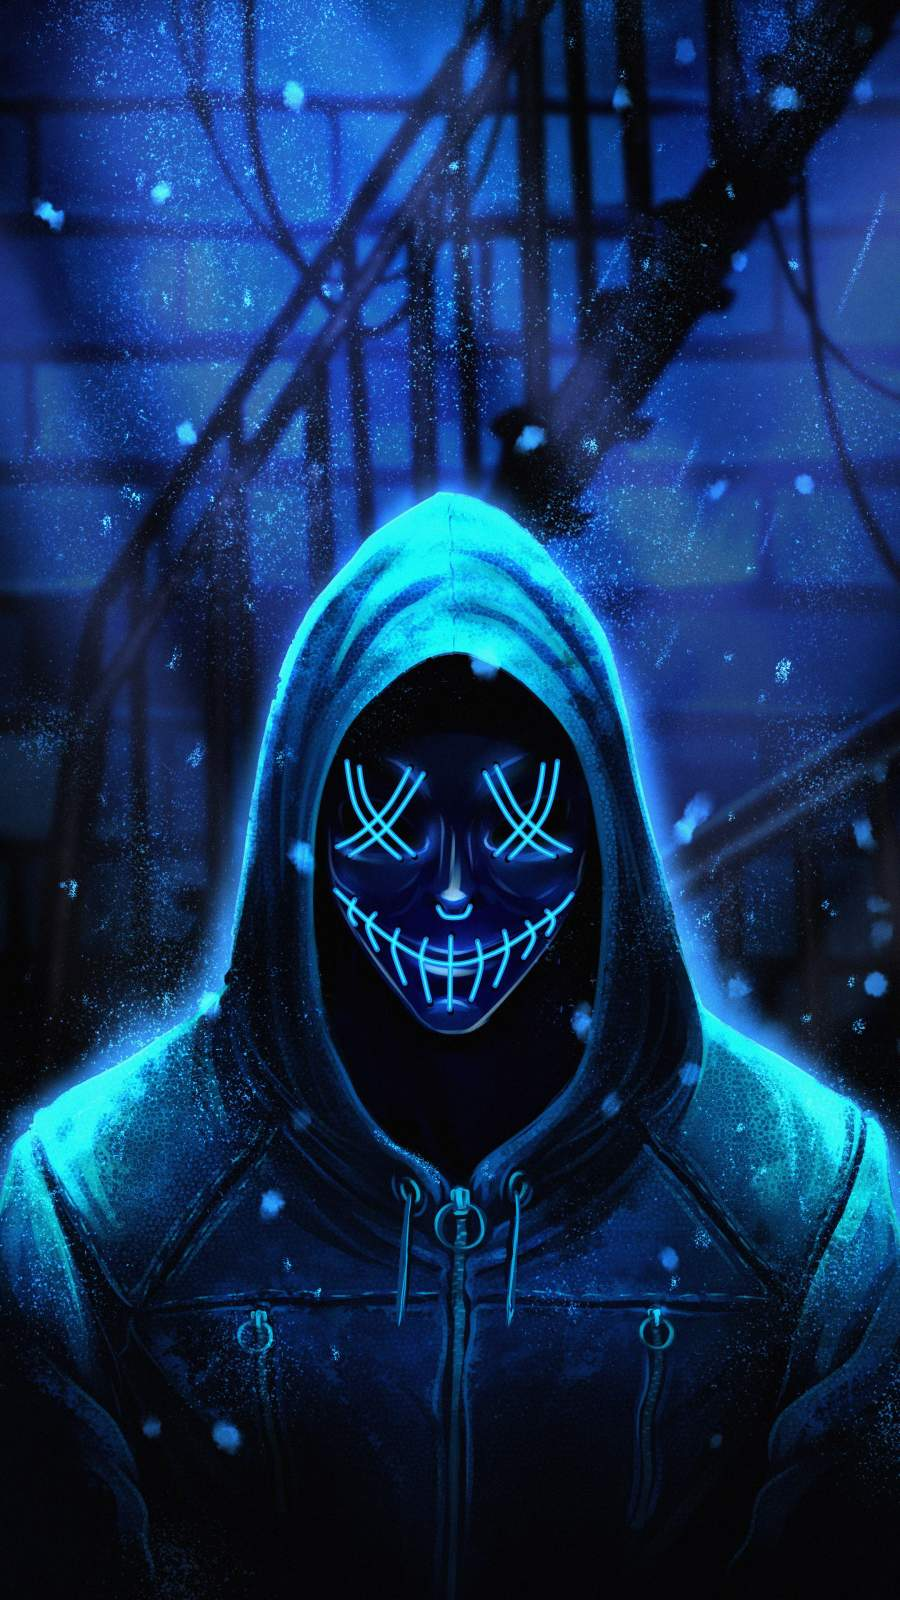 Hoodie Stitched Mask Guy